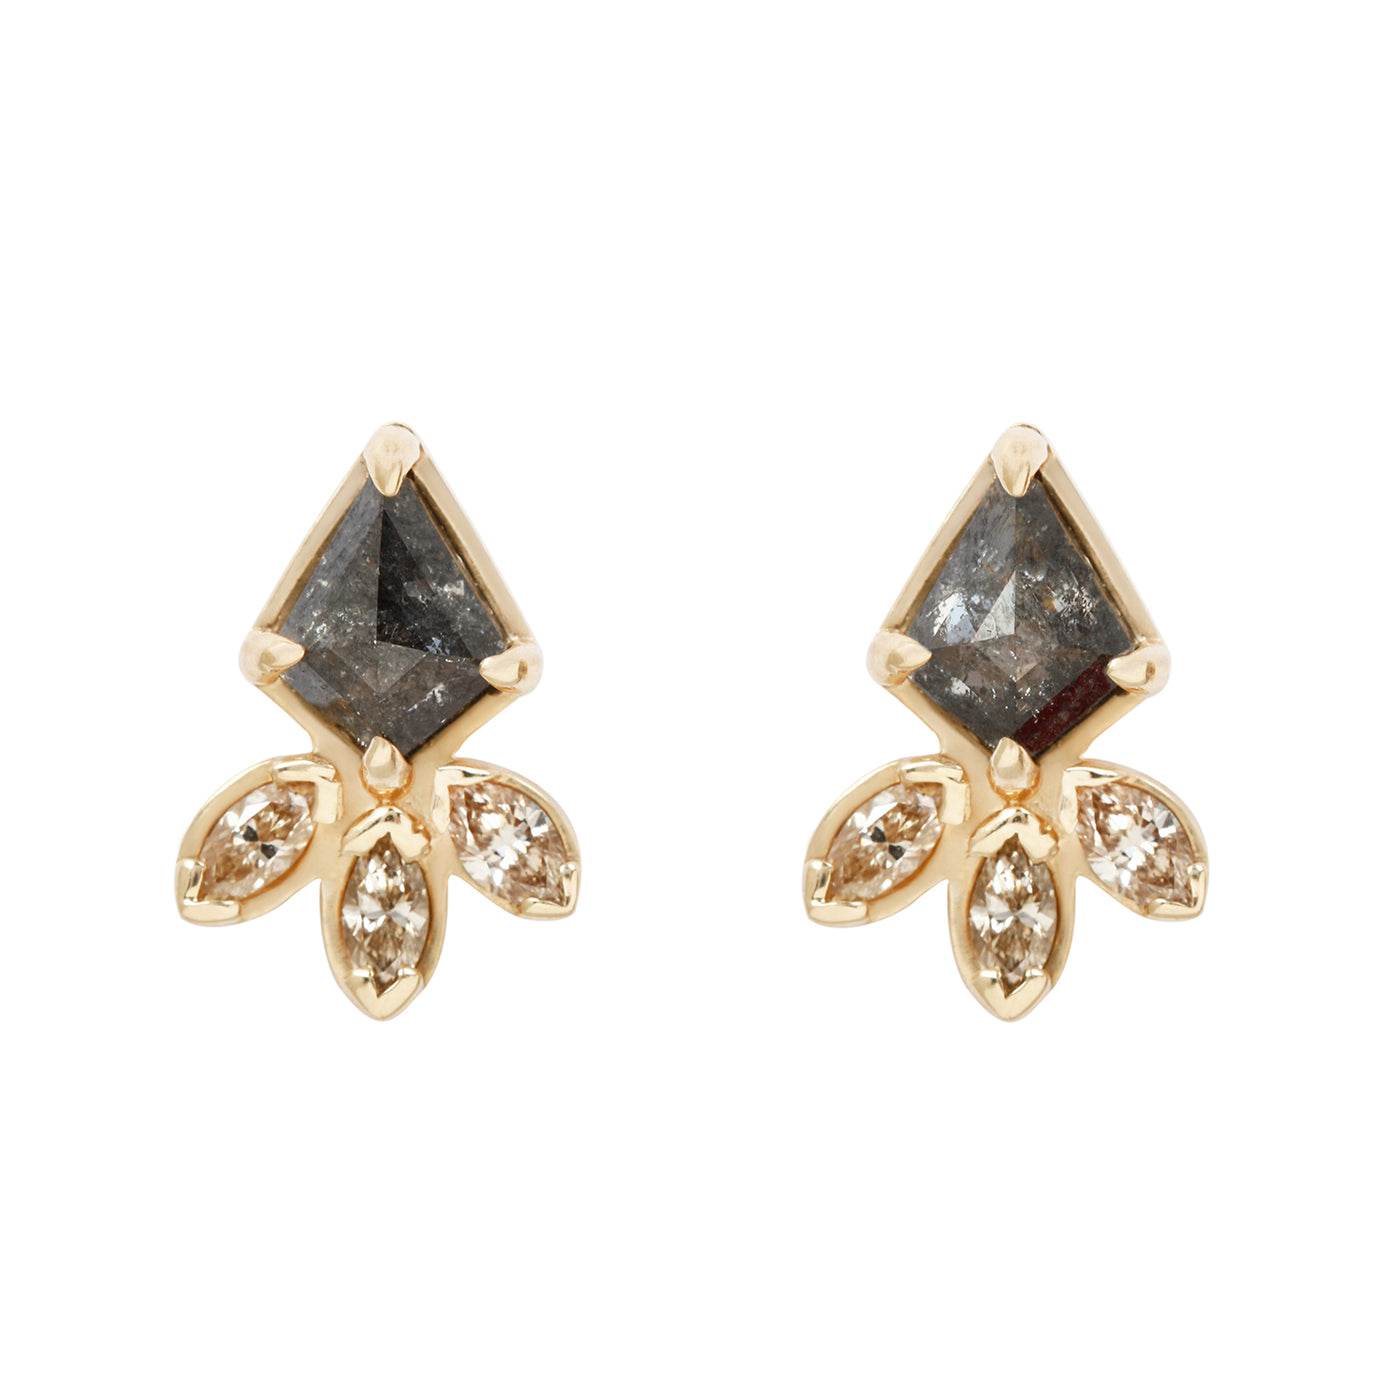 Lauren Wolf Marquise Kite Diamond Earrings